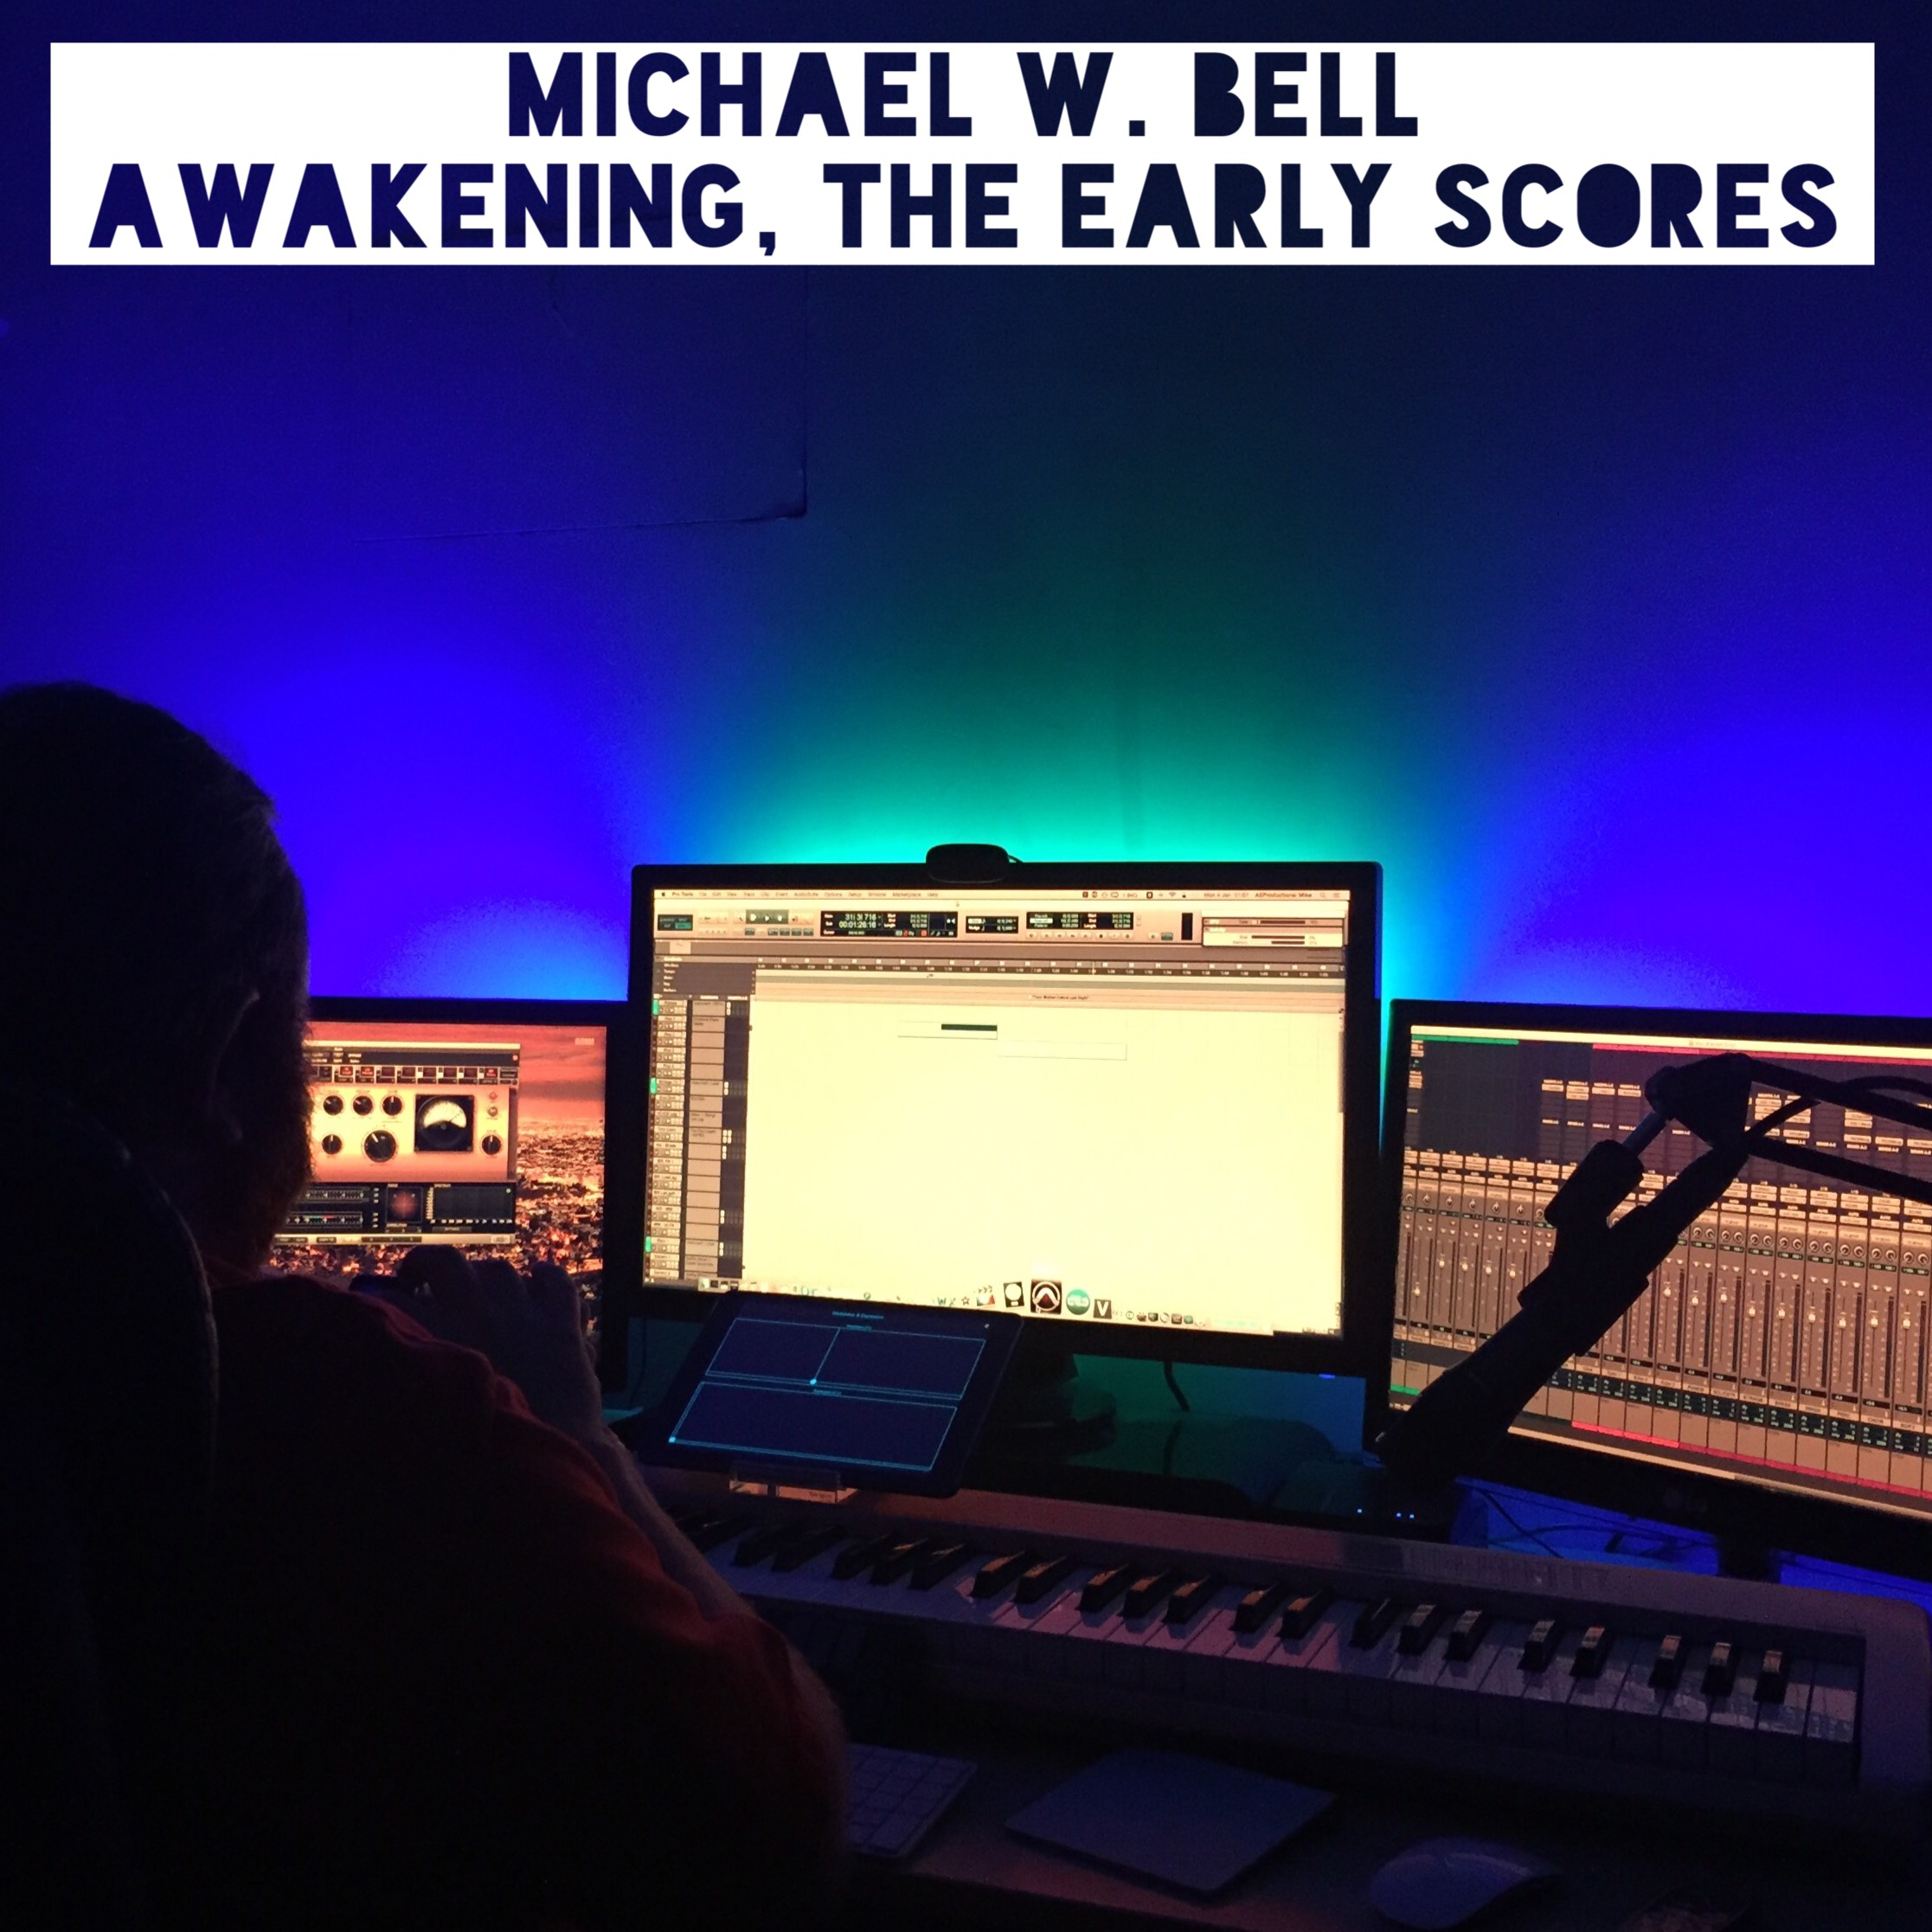 MICHAEL W. BELL - Awaking, the Early Scores - AEP0003 - LP